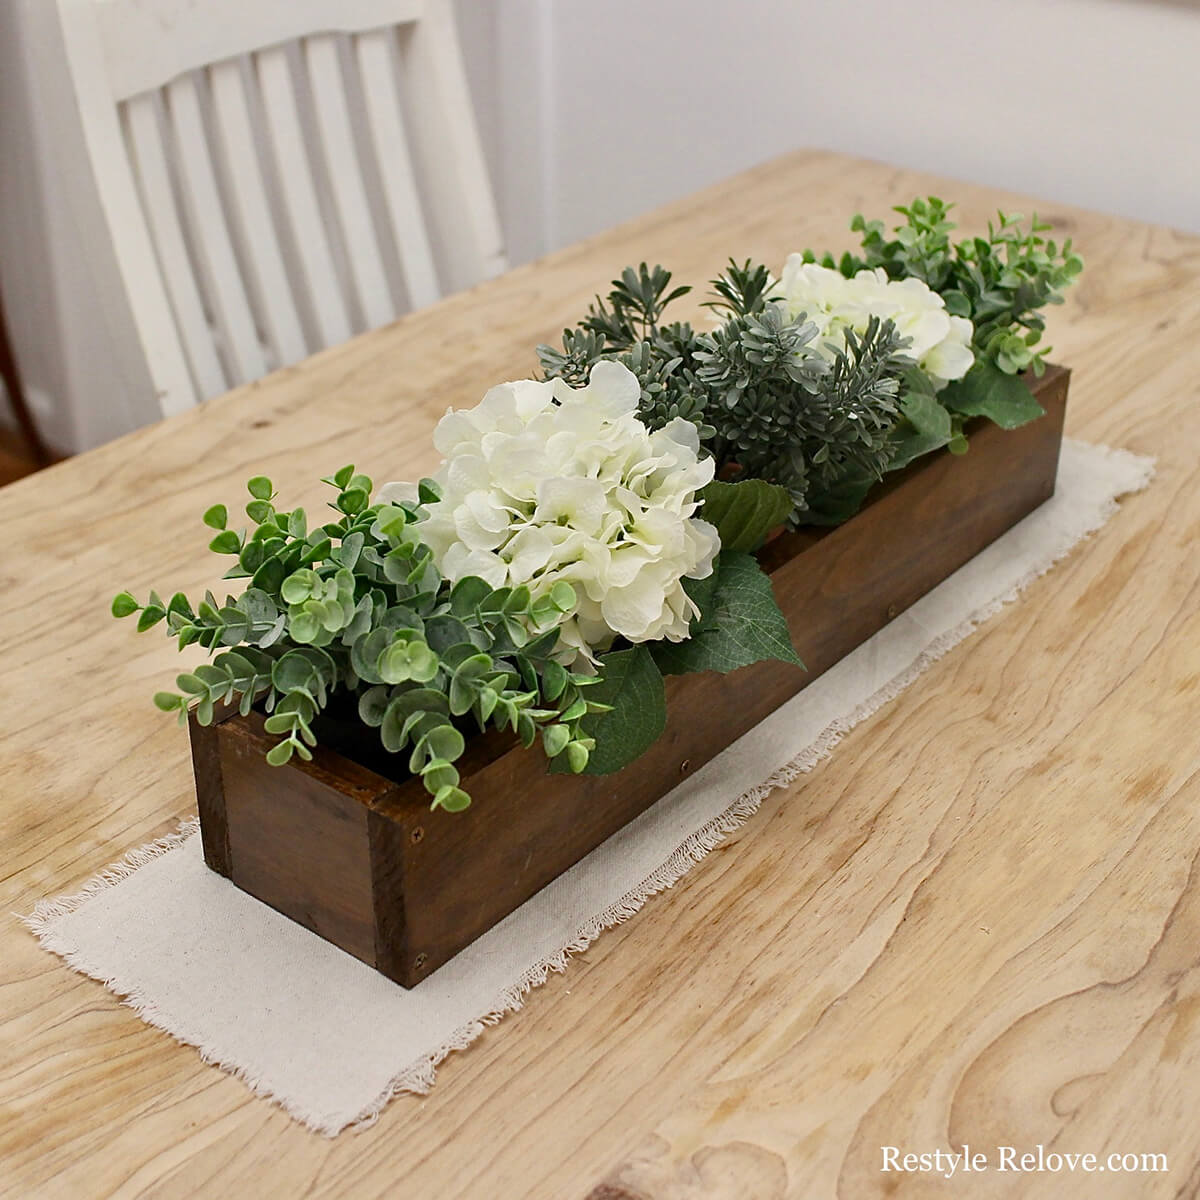 DIY Tiered Flowerbox Centerpiece